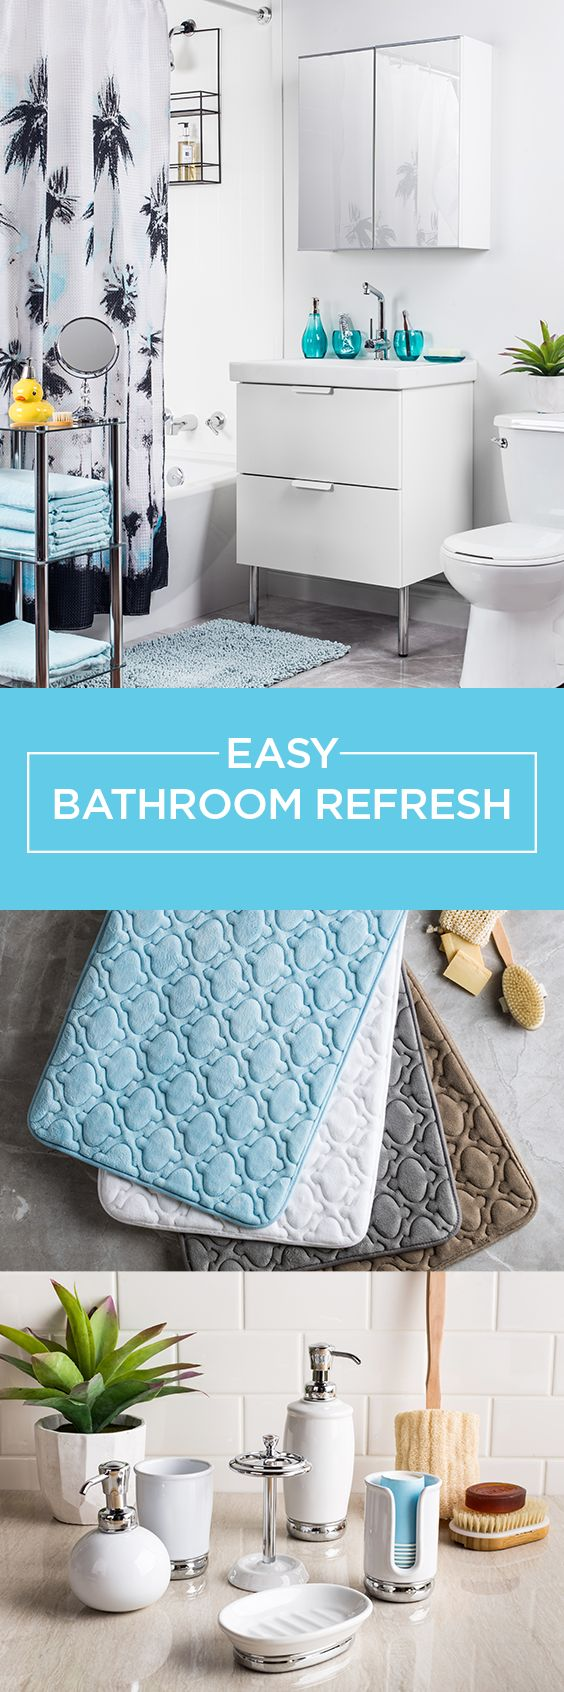 Freshening up your bathroom can quick, easy and - best of all - inexpensive!